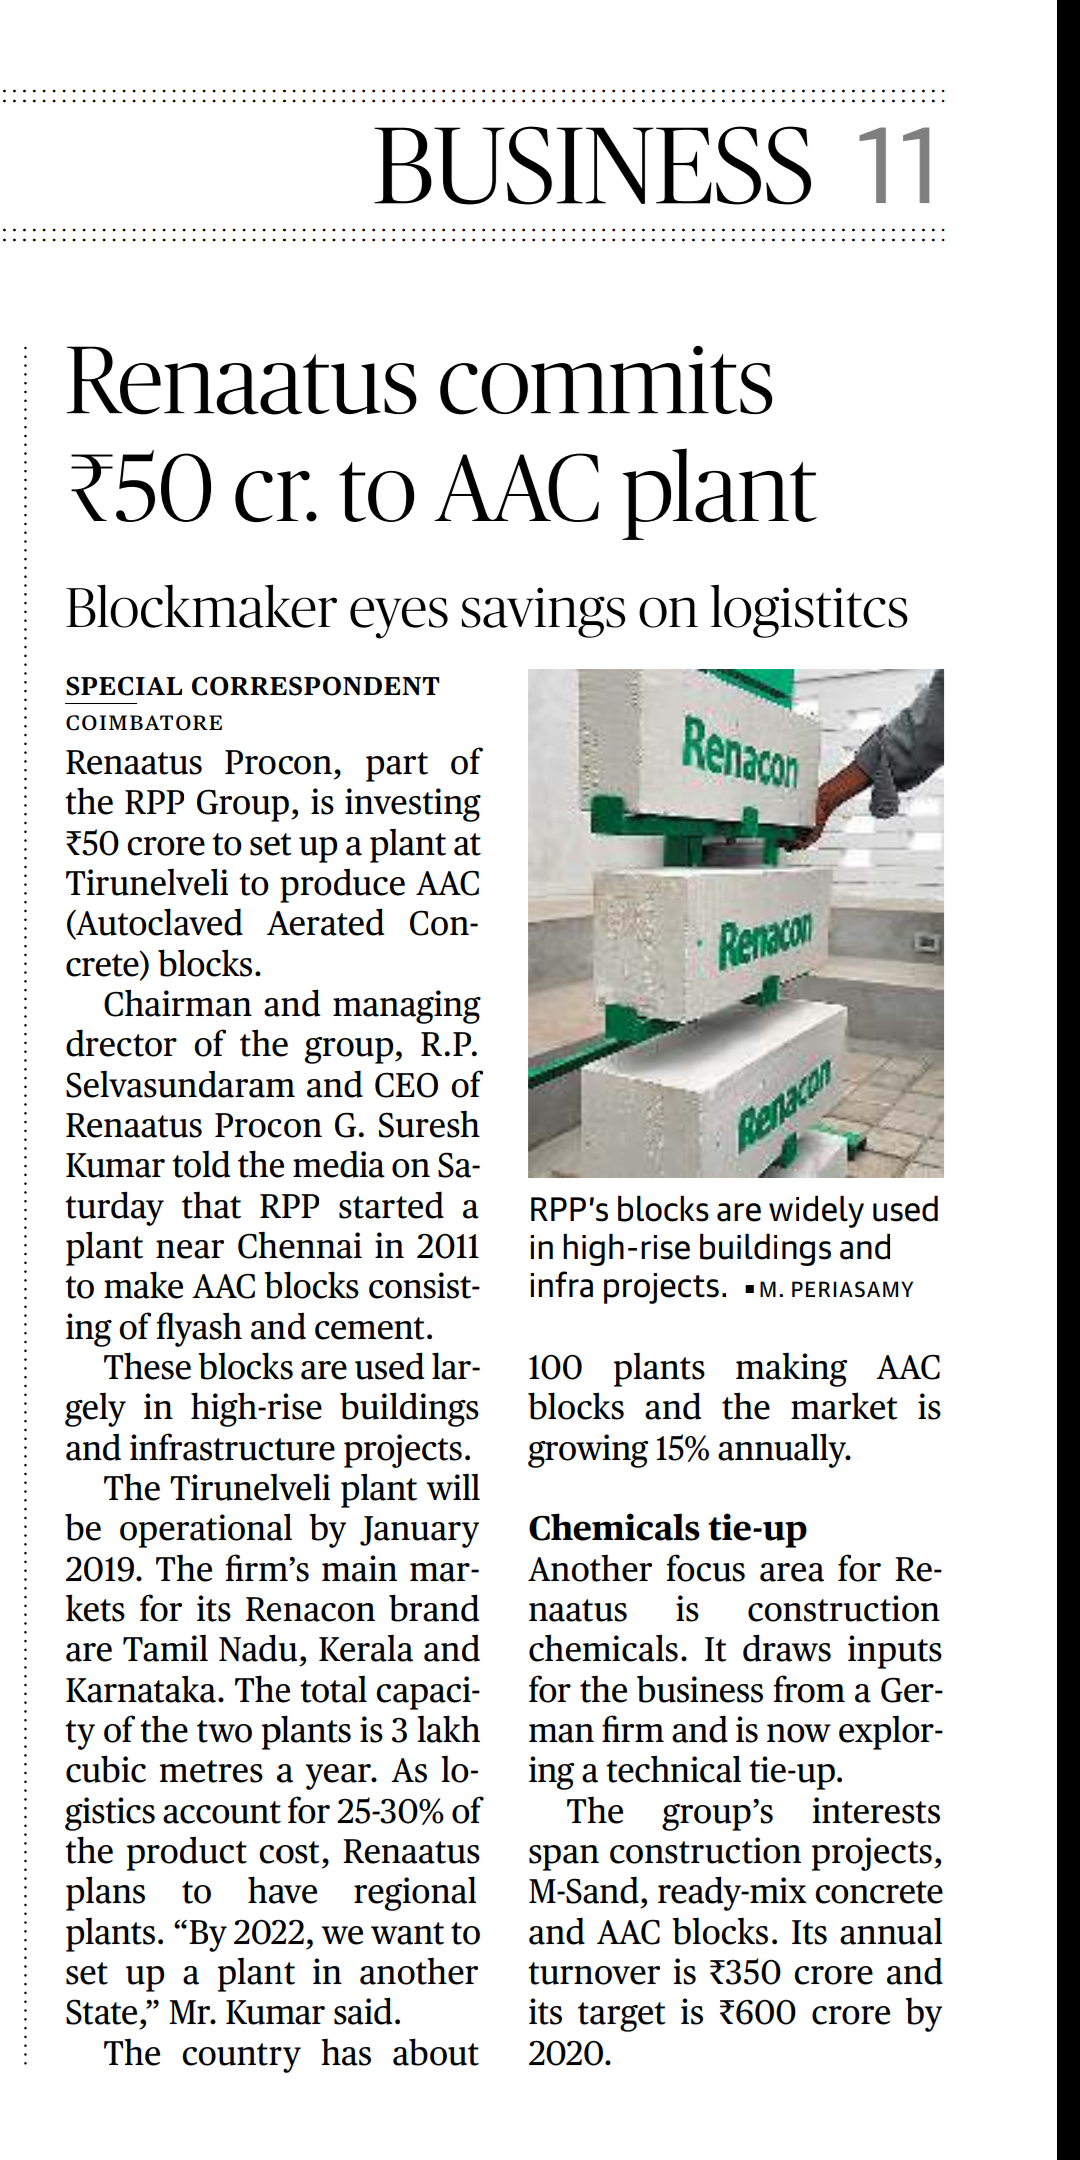 Renacon Commits Rs.50 Cr AAC Plant at Tirunelveli